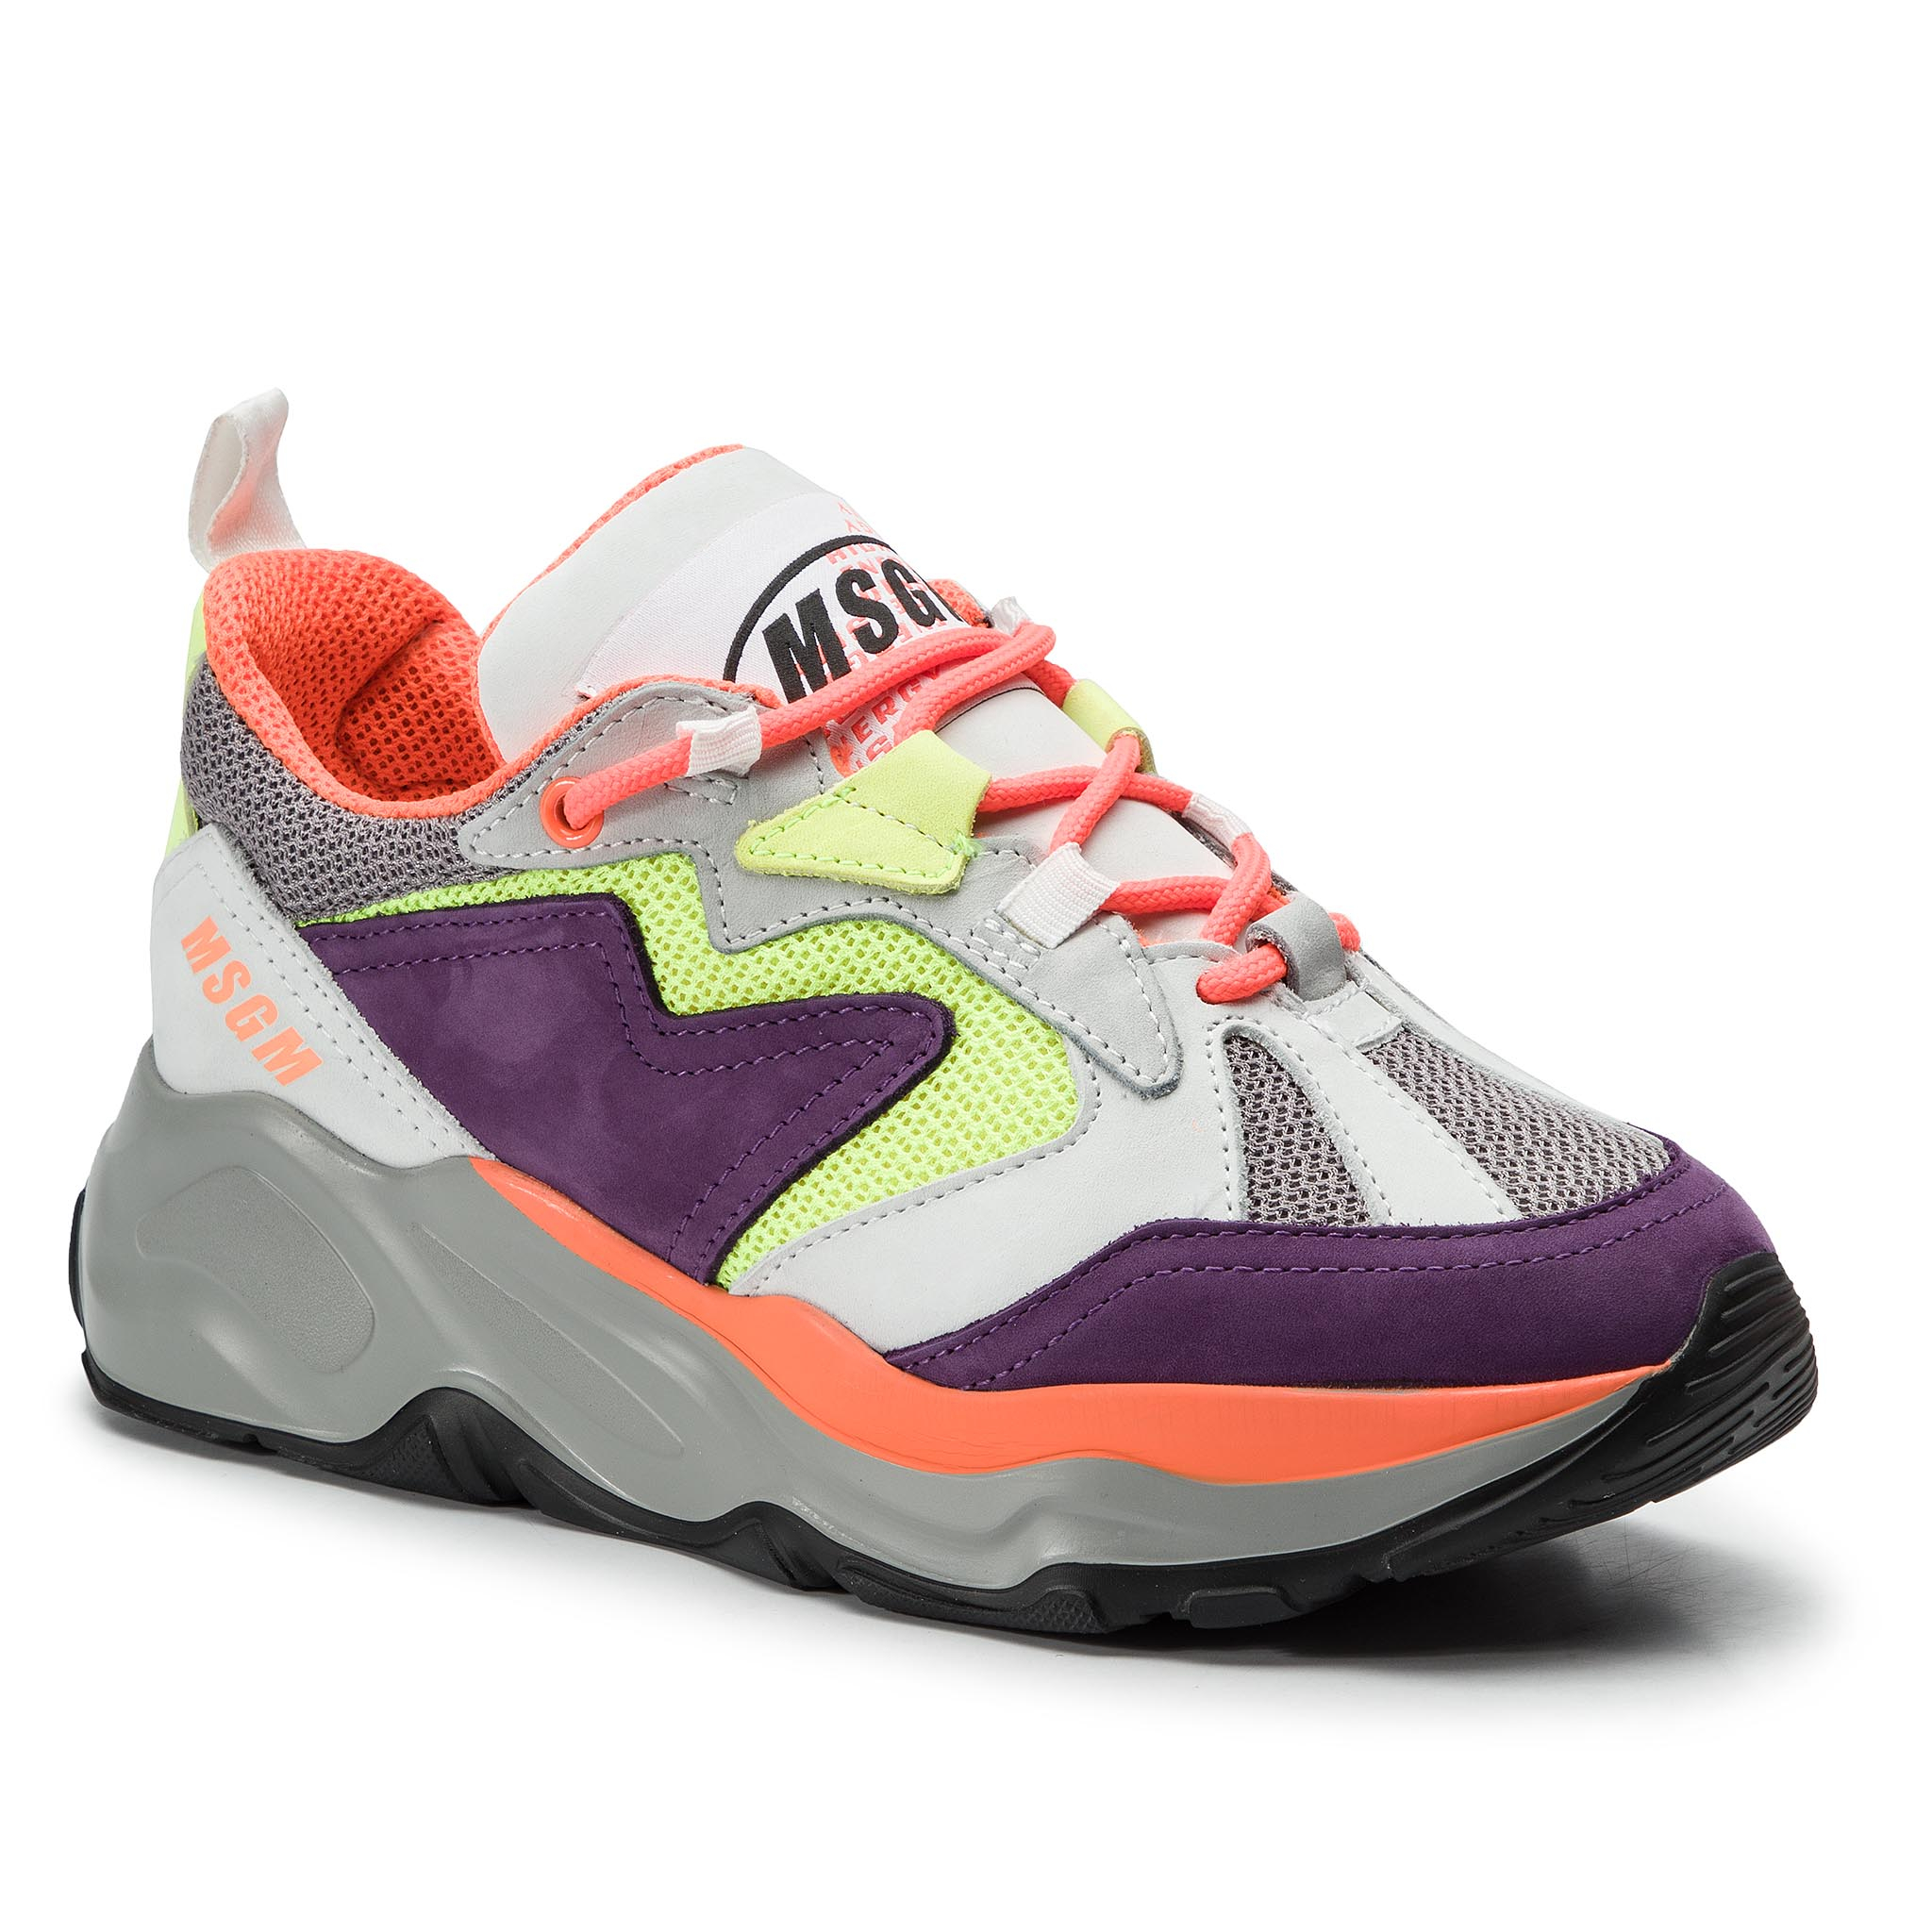 MSGM Attack Sneakers 2642MDS2086 700 74